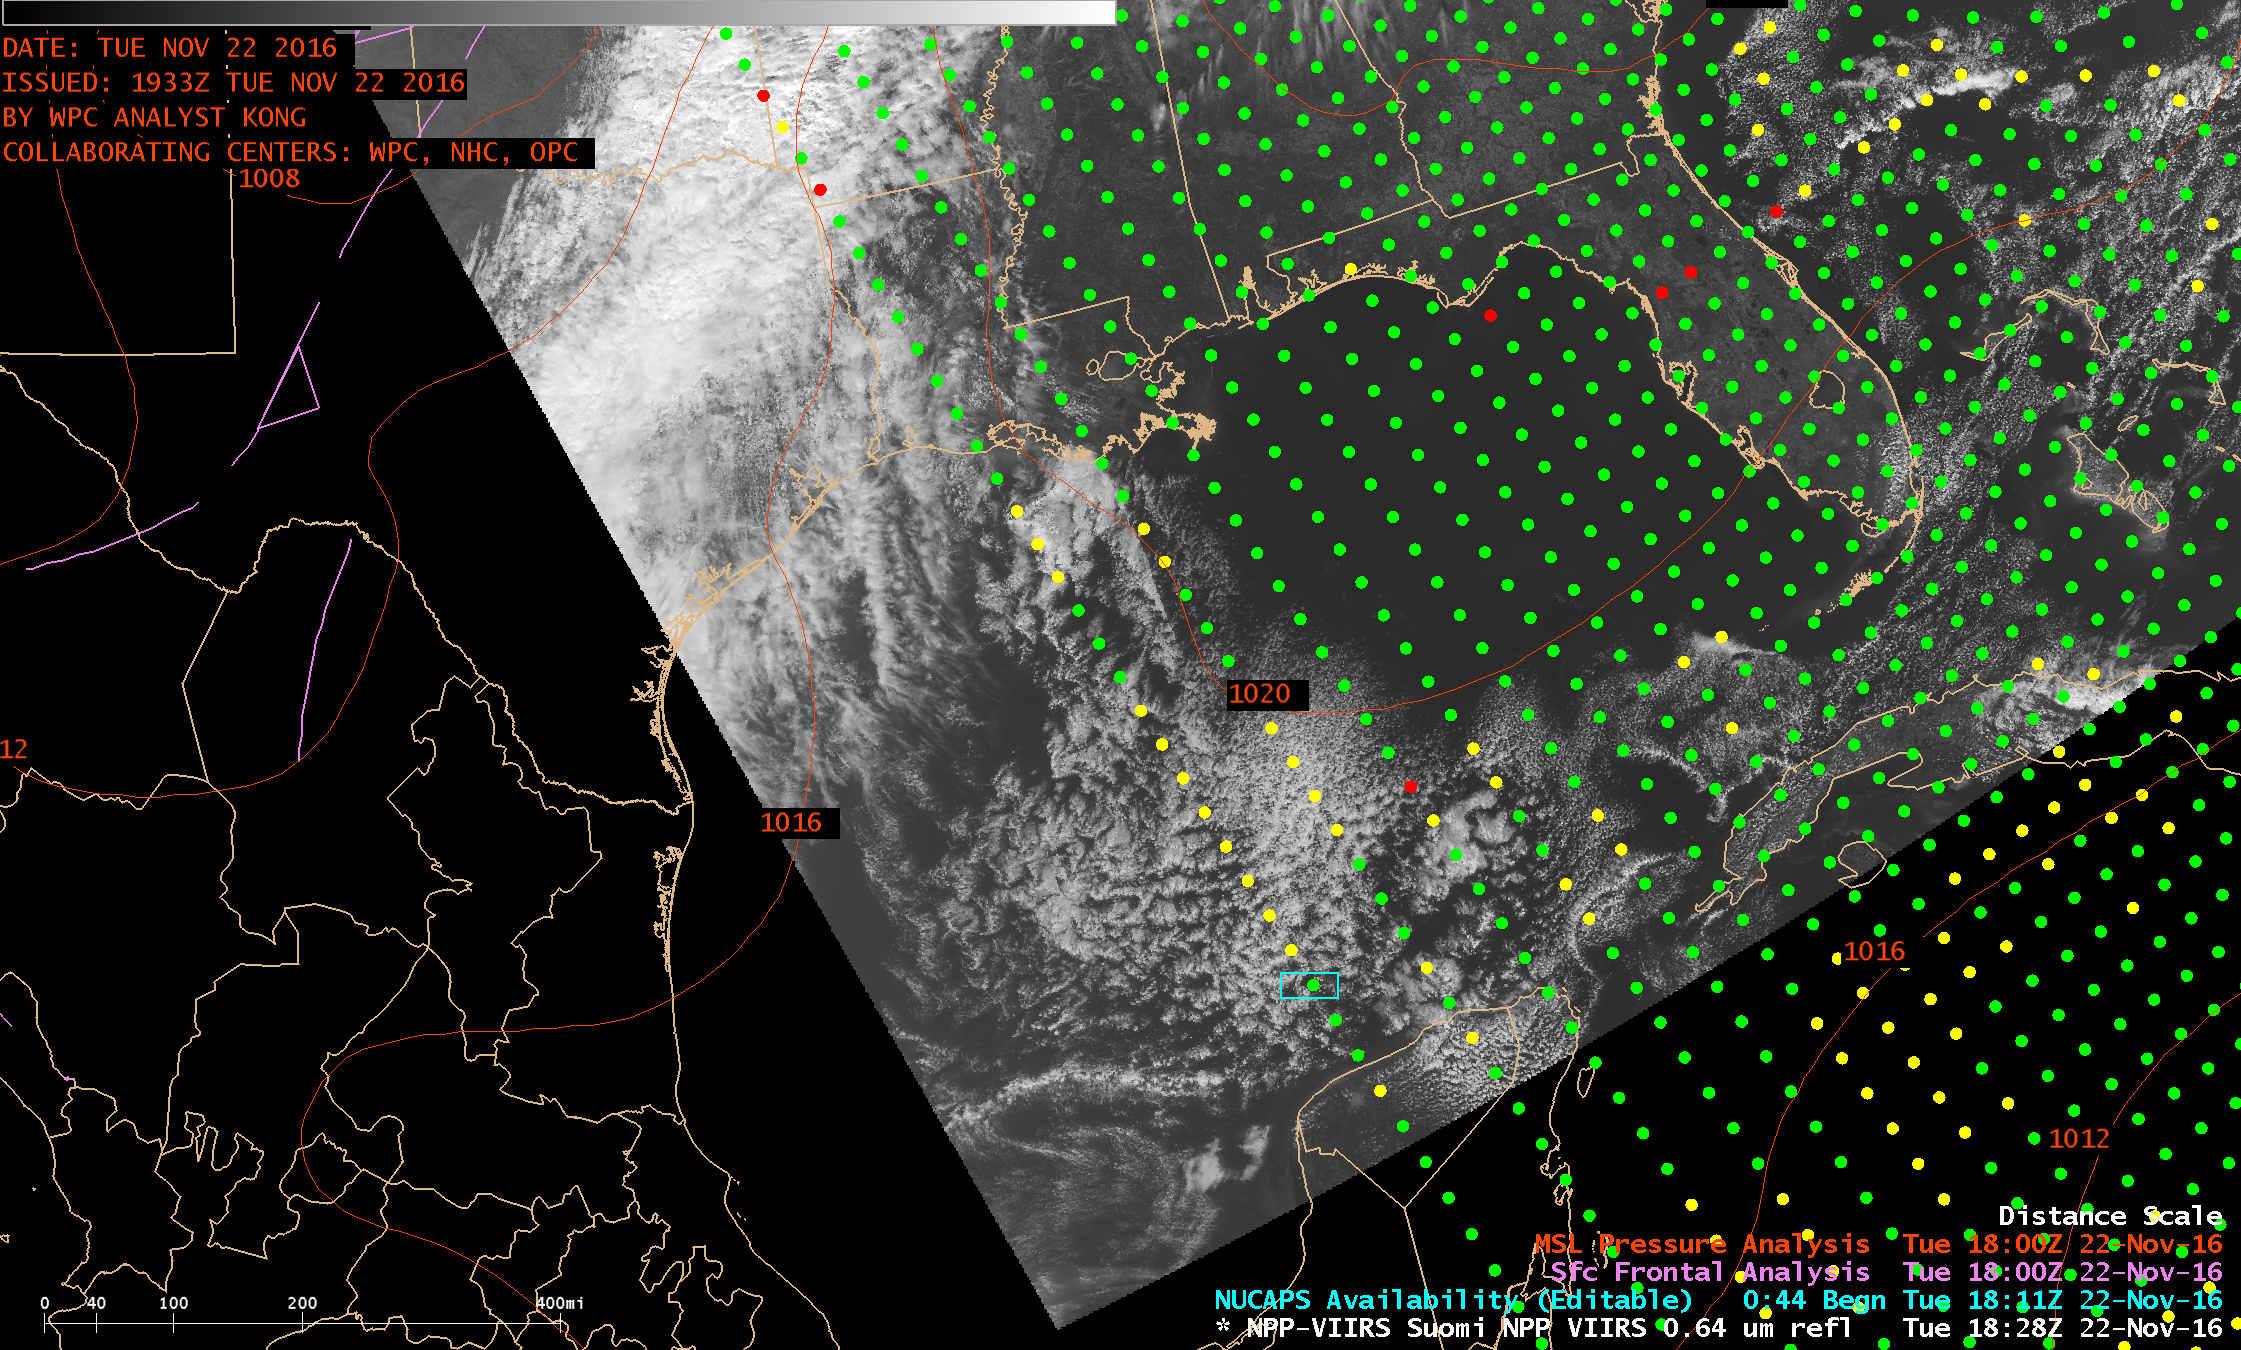 Suomi NPP VIIRS Visible (0.64 µm) image, with NUCAPS sounding locations and surface analysis [click to enlarge]